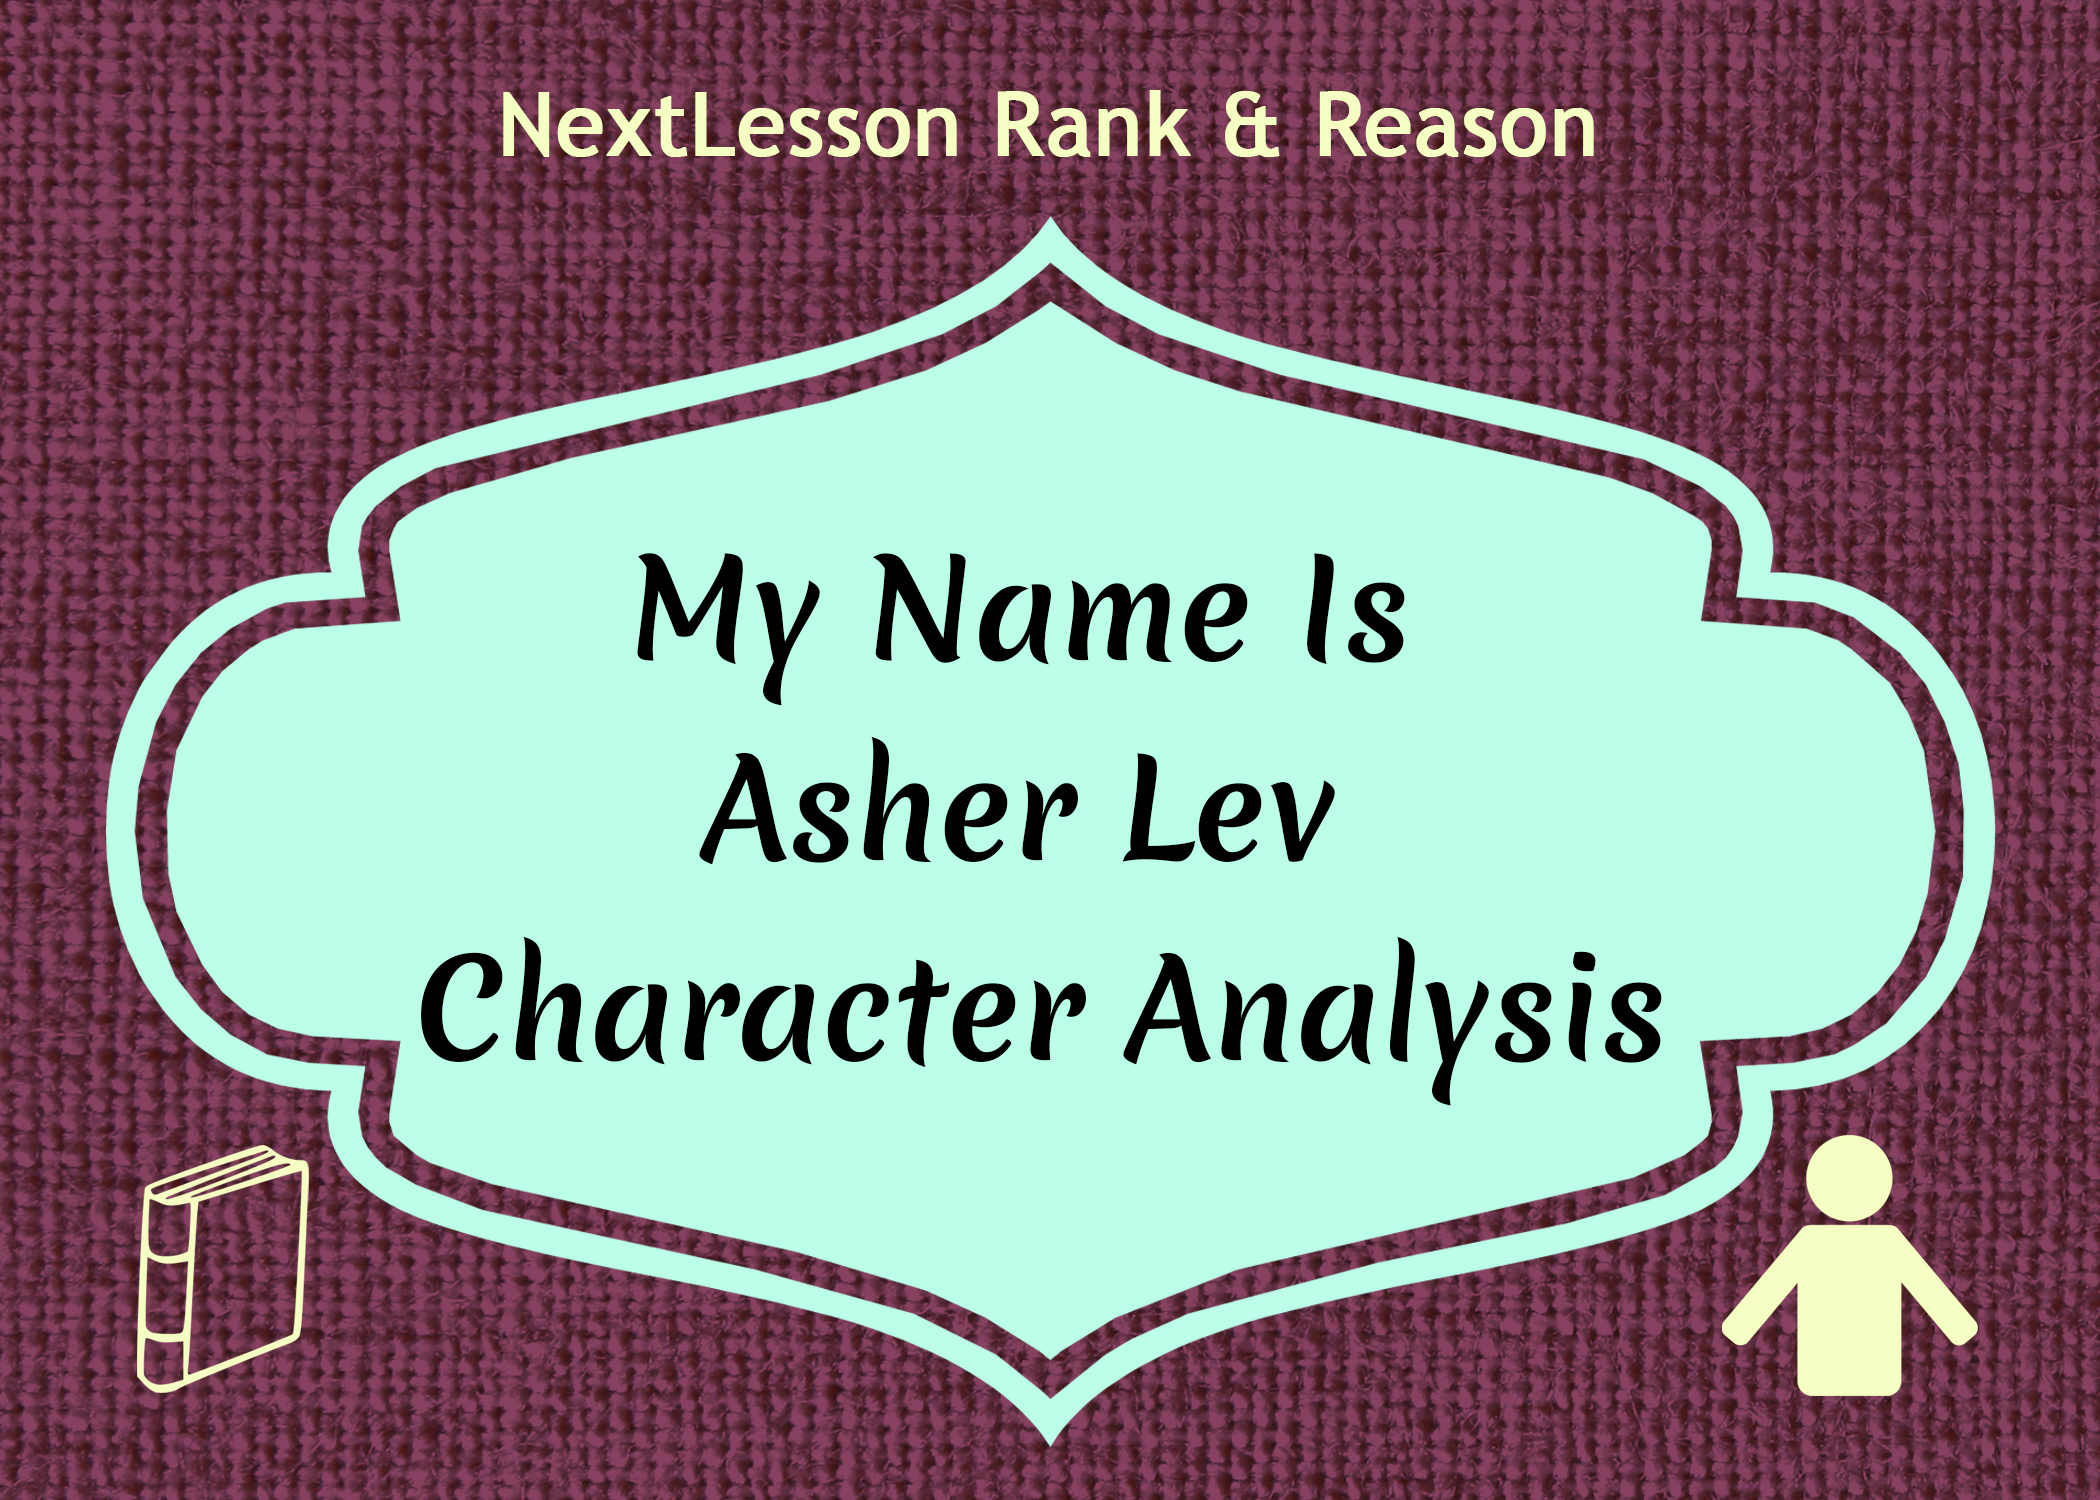 """my name is asher lev essay The protagonist and narrator of the book, """"my name is asher lev"""" asher lev's story begins with him as a young boy from a jewish family a young boy who lived in conservative community that was strict and fascist in nature when it comes to religion two conflicting forces play an important role in asher lev's story."""